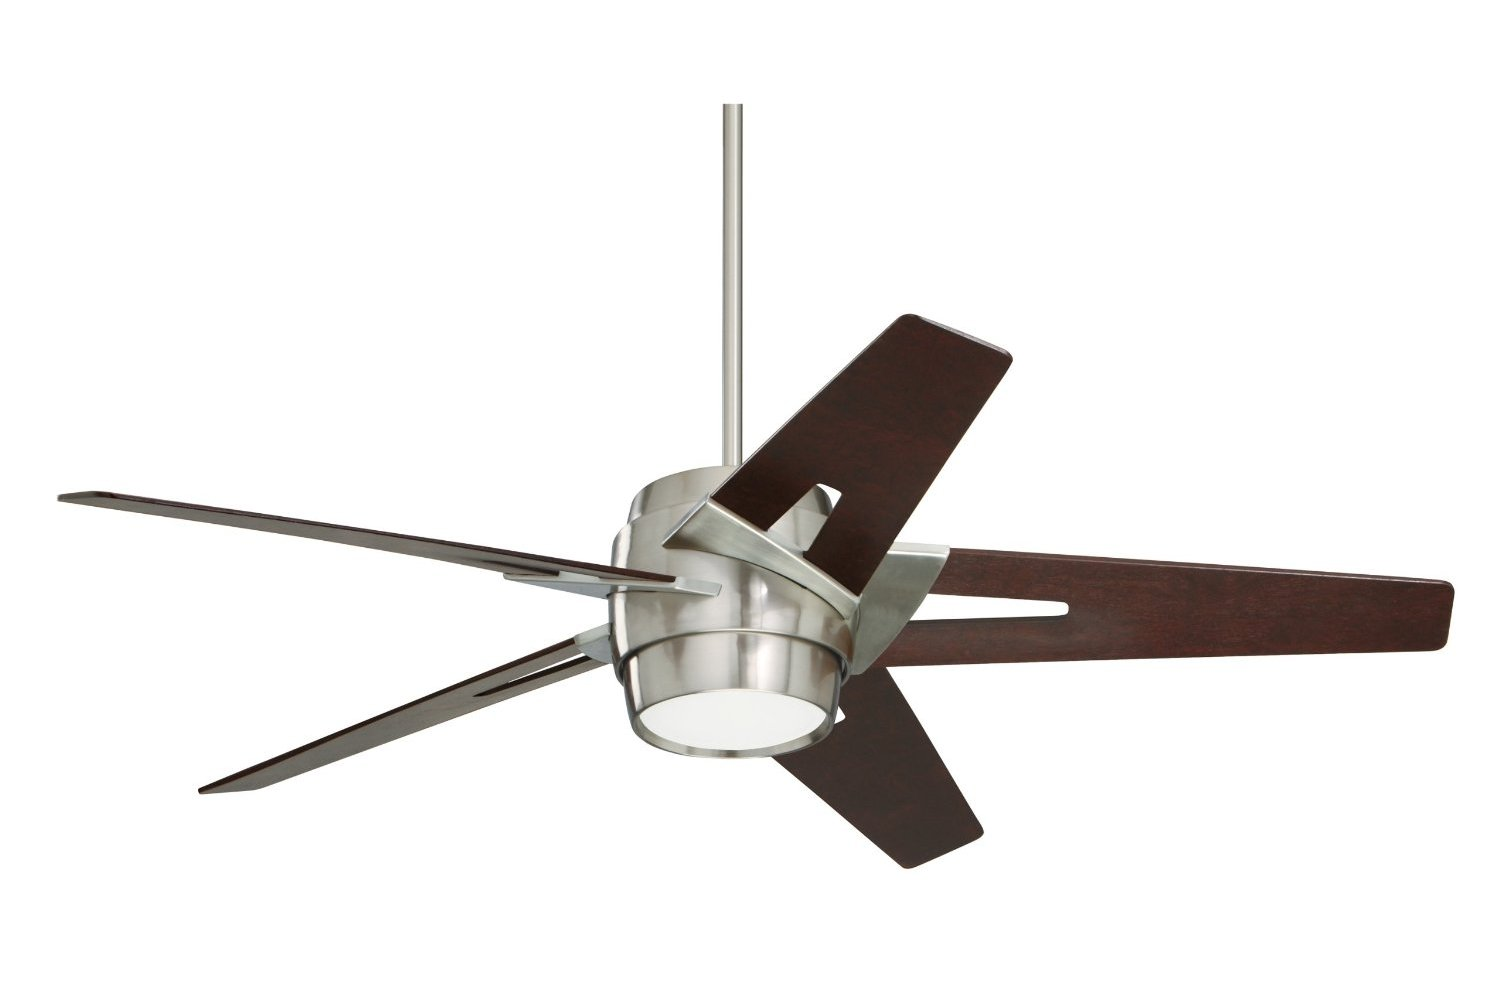 Top 15 New and Unique Ceiling Fans in 2014 - Qnud